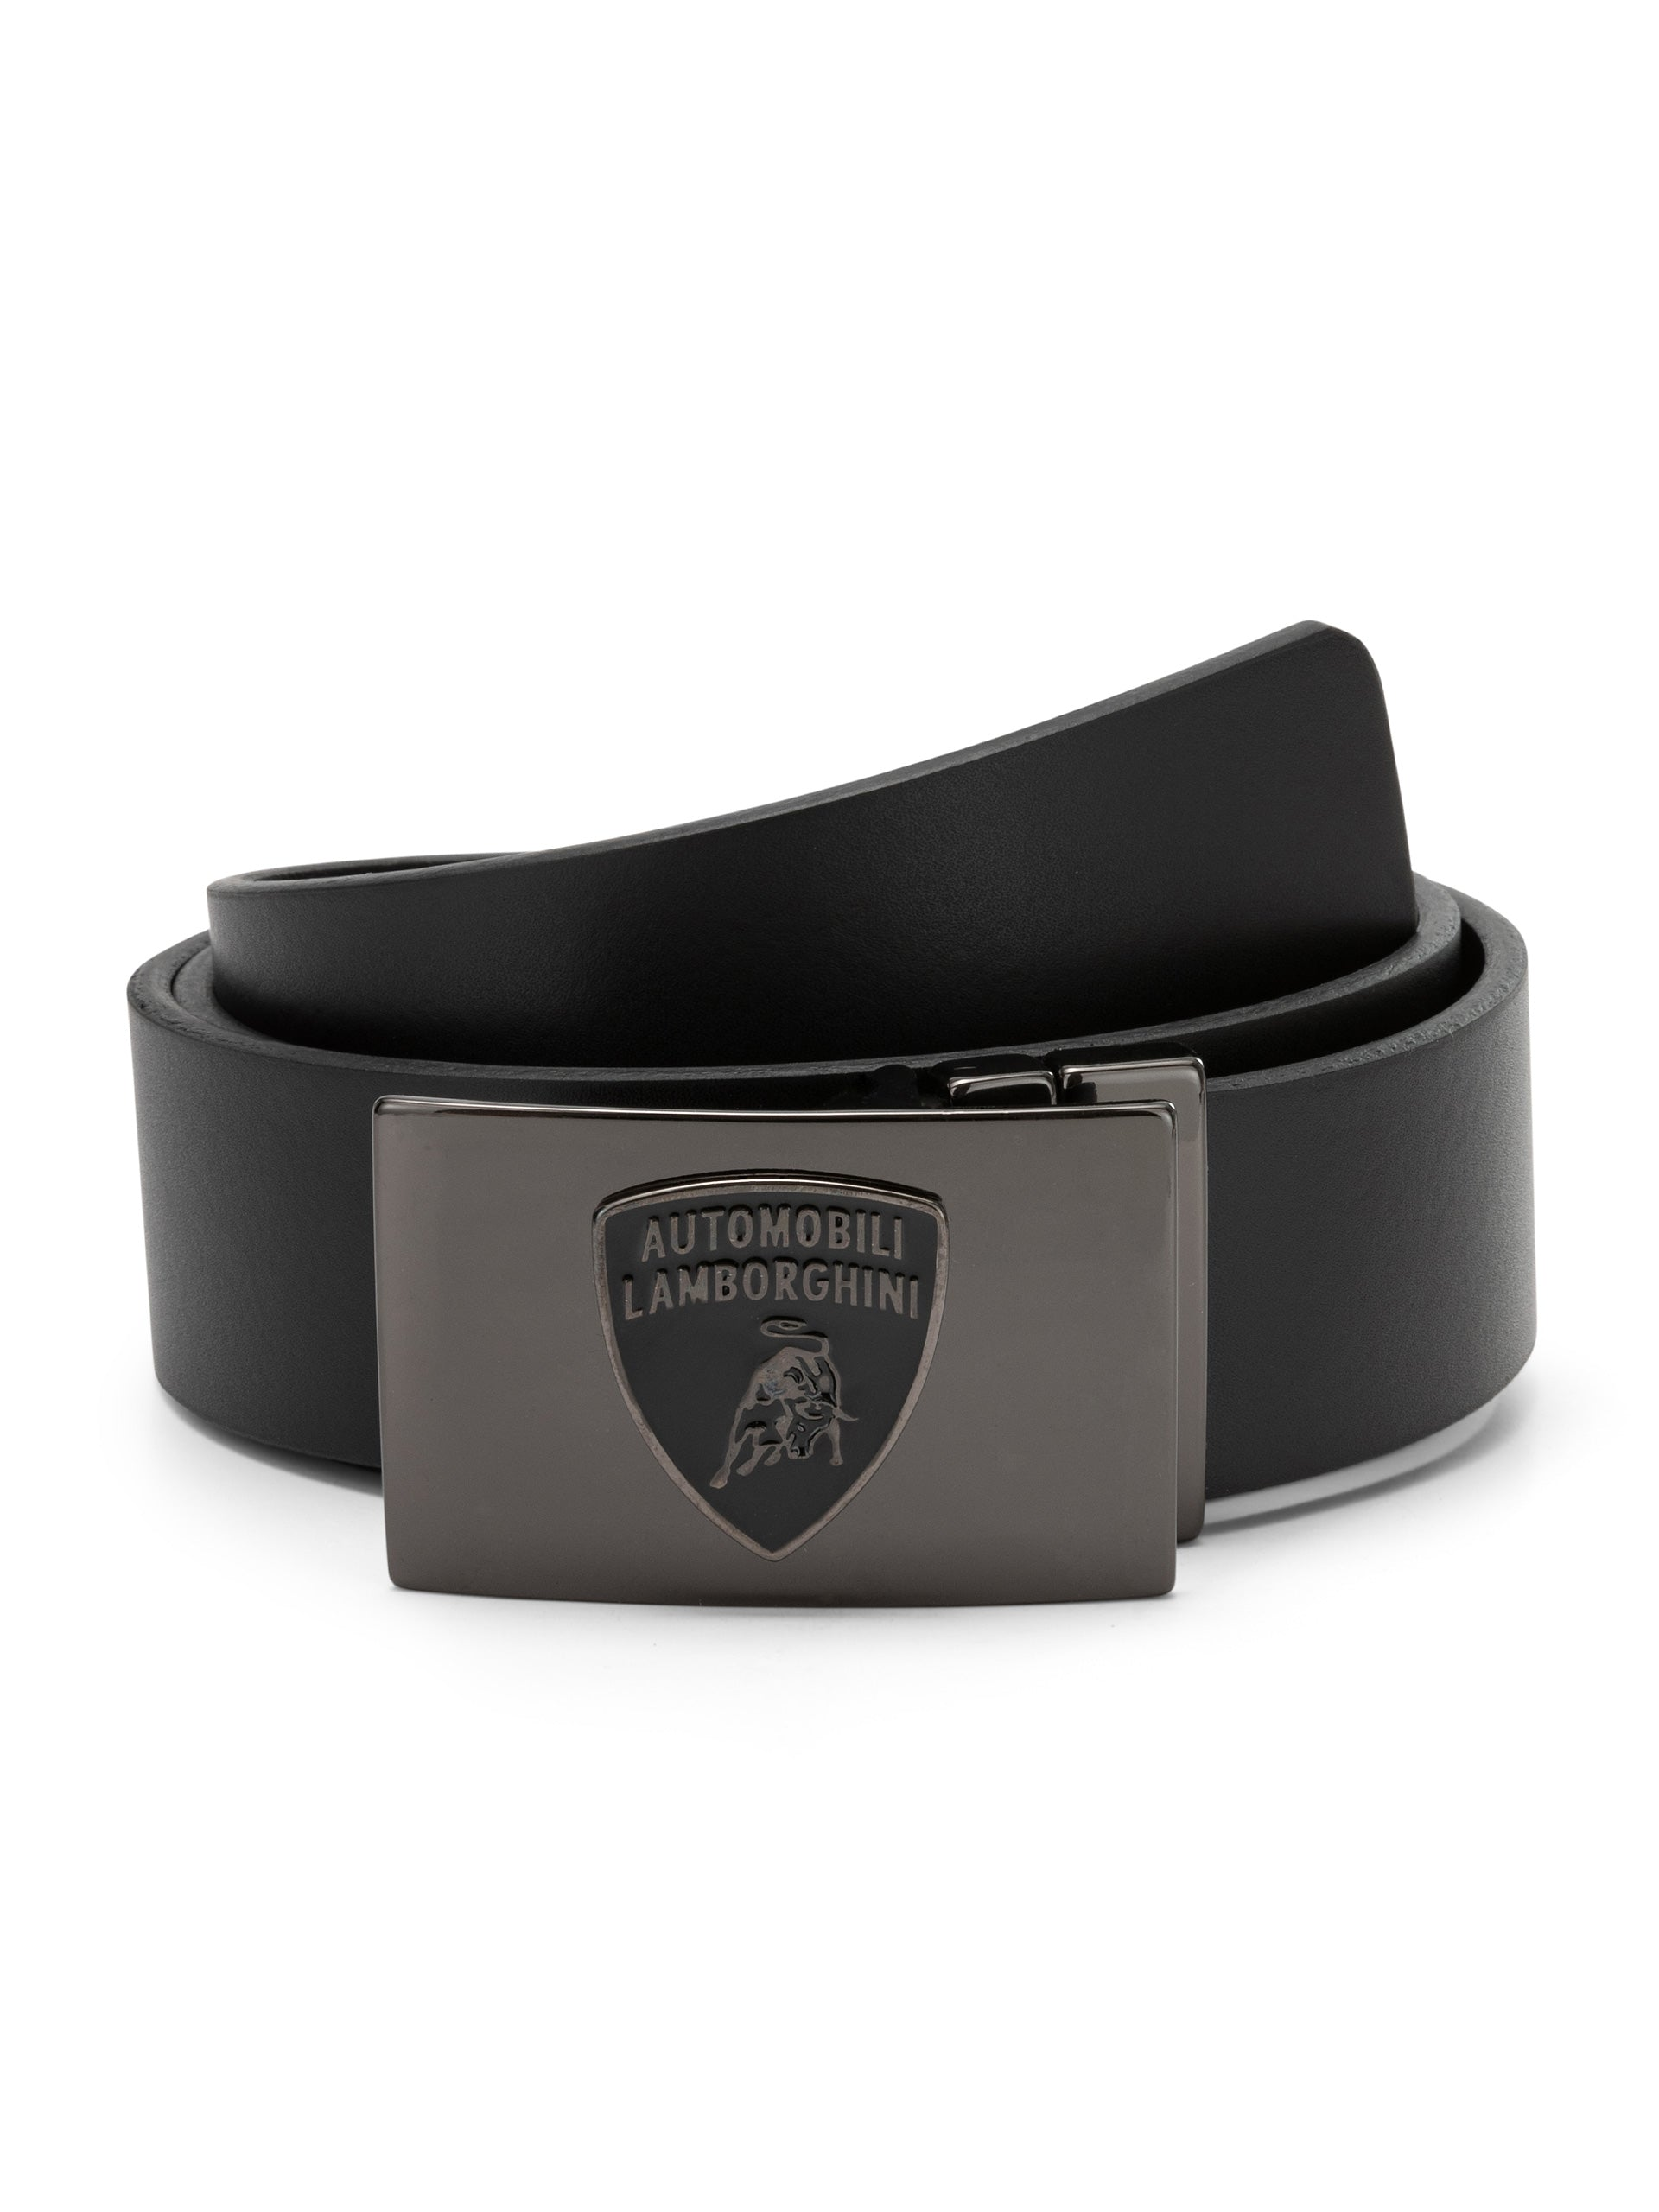 Lamborghini Leather Belt Black